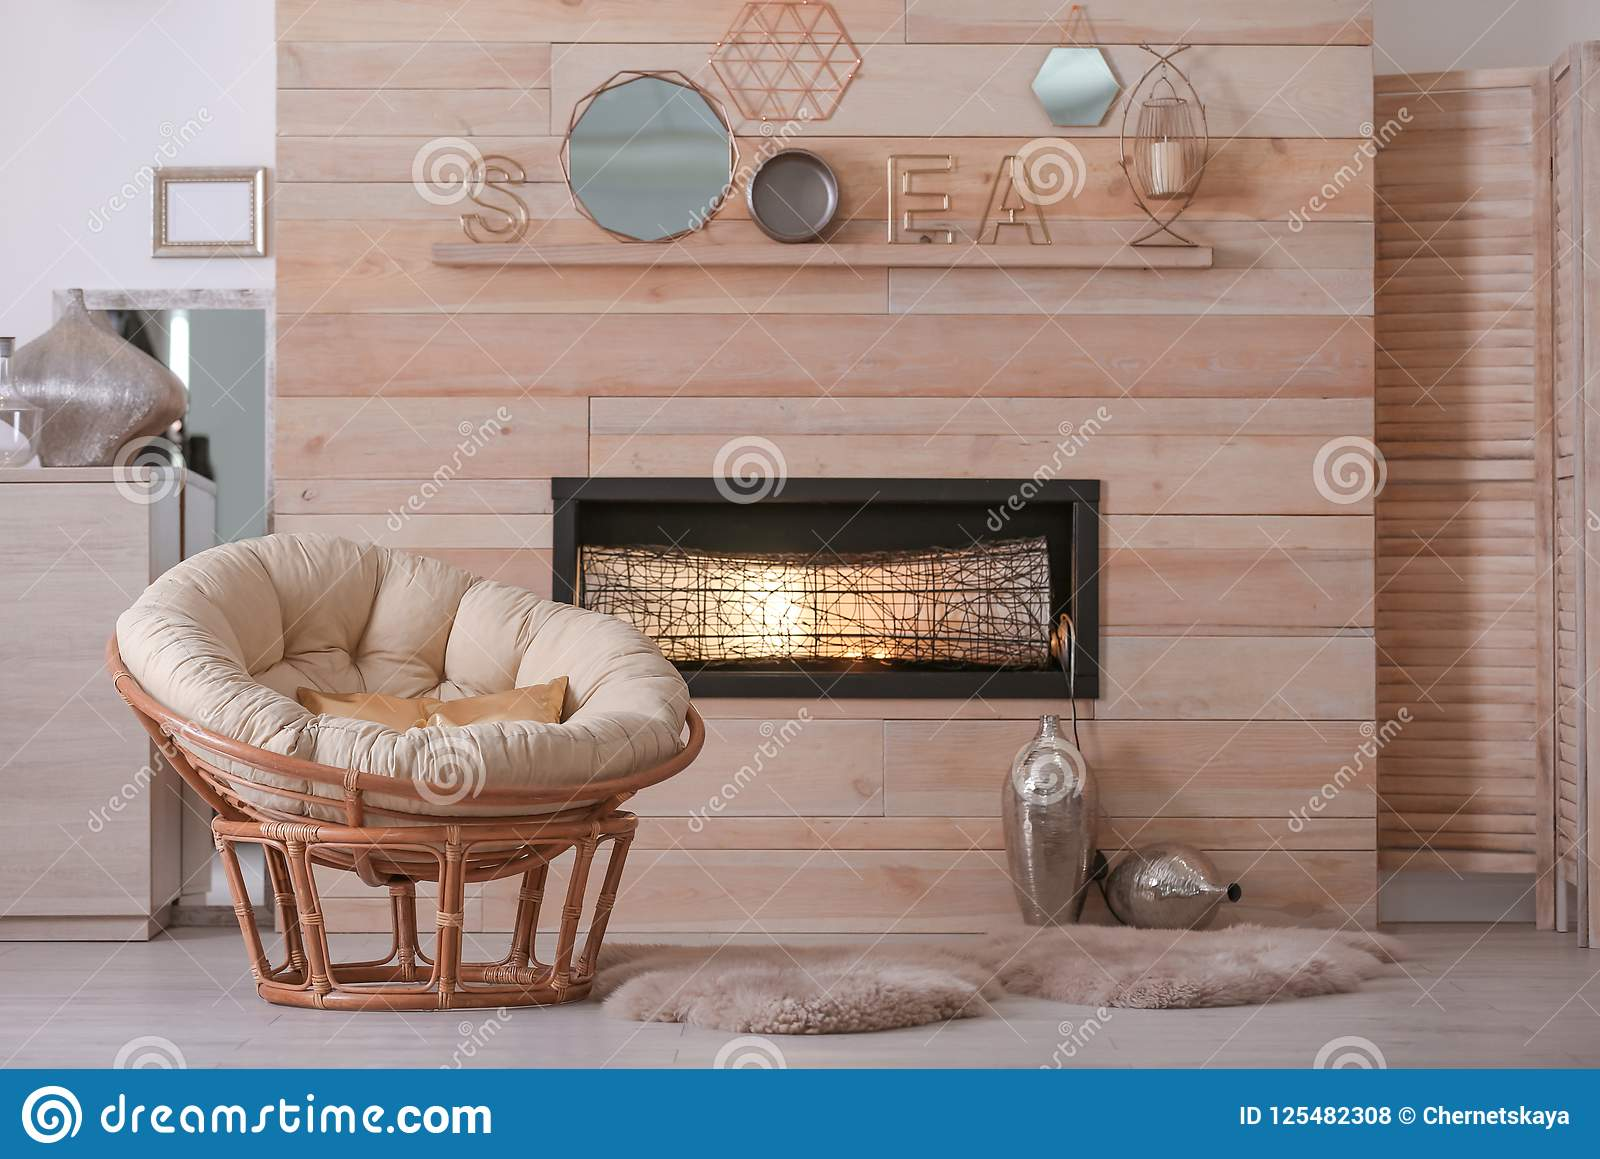 Cozy Living Room Interior With Comfortable Papasan Chair ...